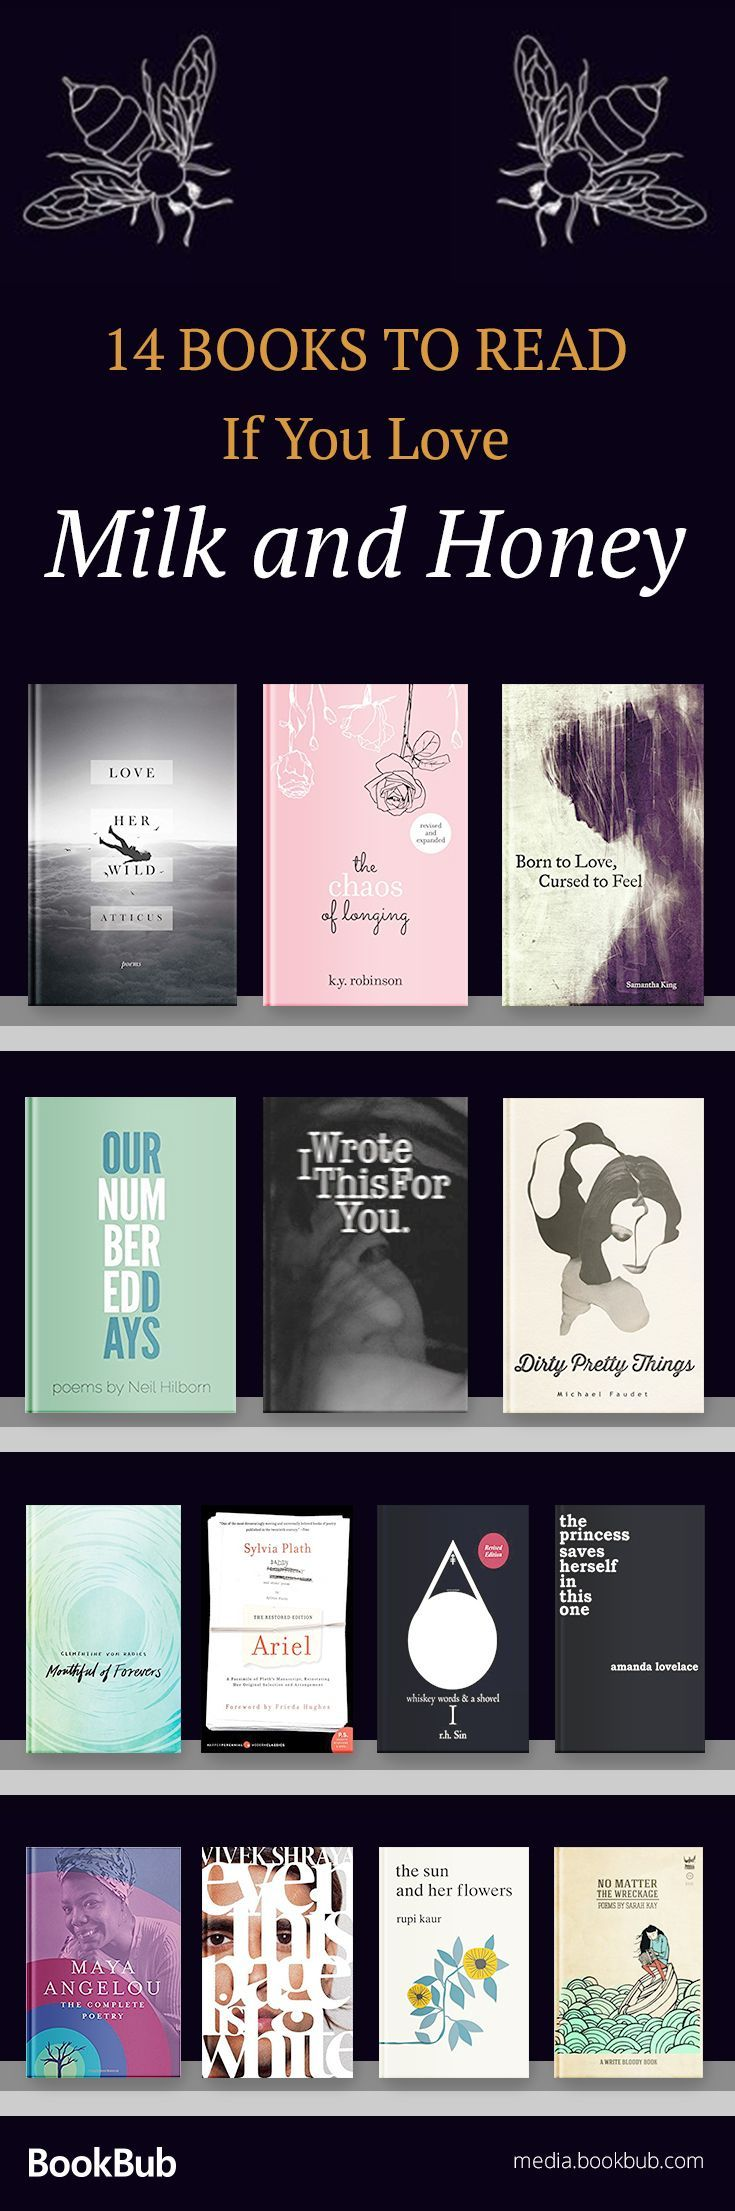 14 books like Milk and Honey, including deep, beautiful poetry books about life and love.